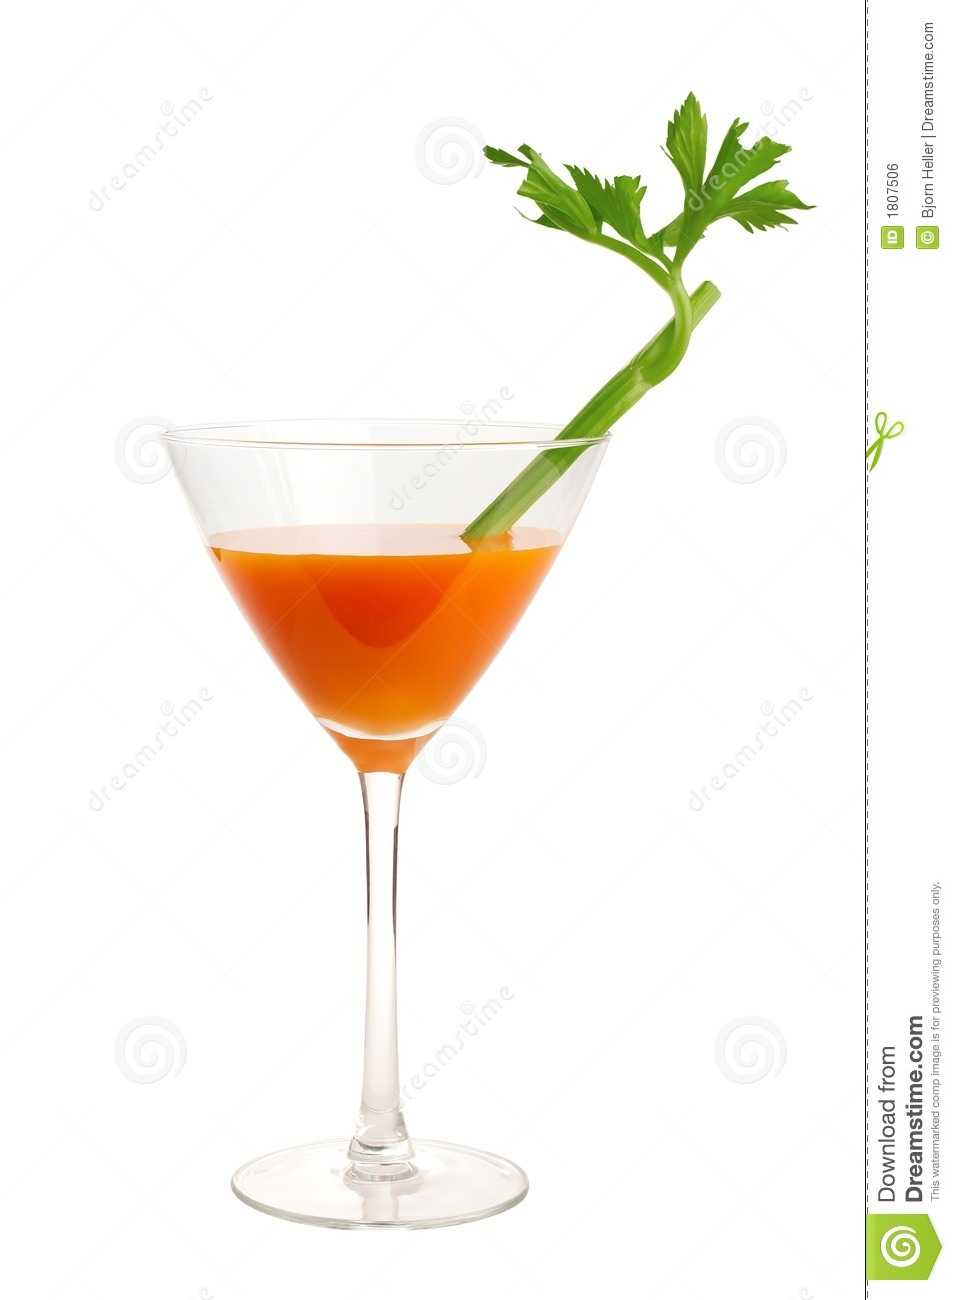 Carrot And Celery Cocktail Royalty Free Stock Image - Image: 1807506